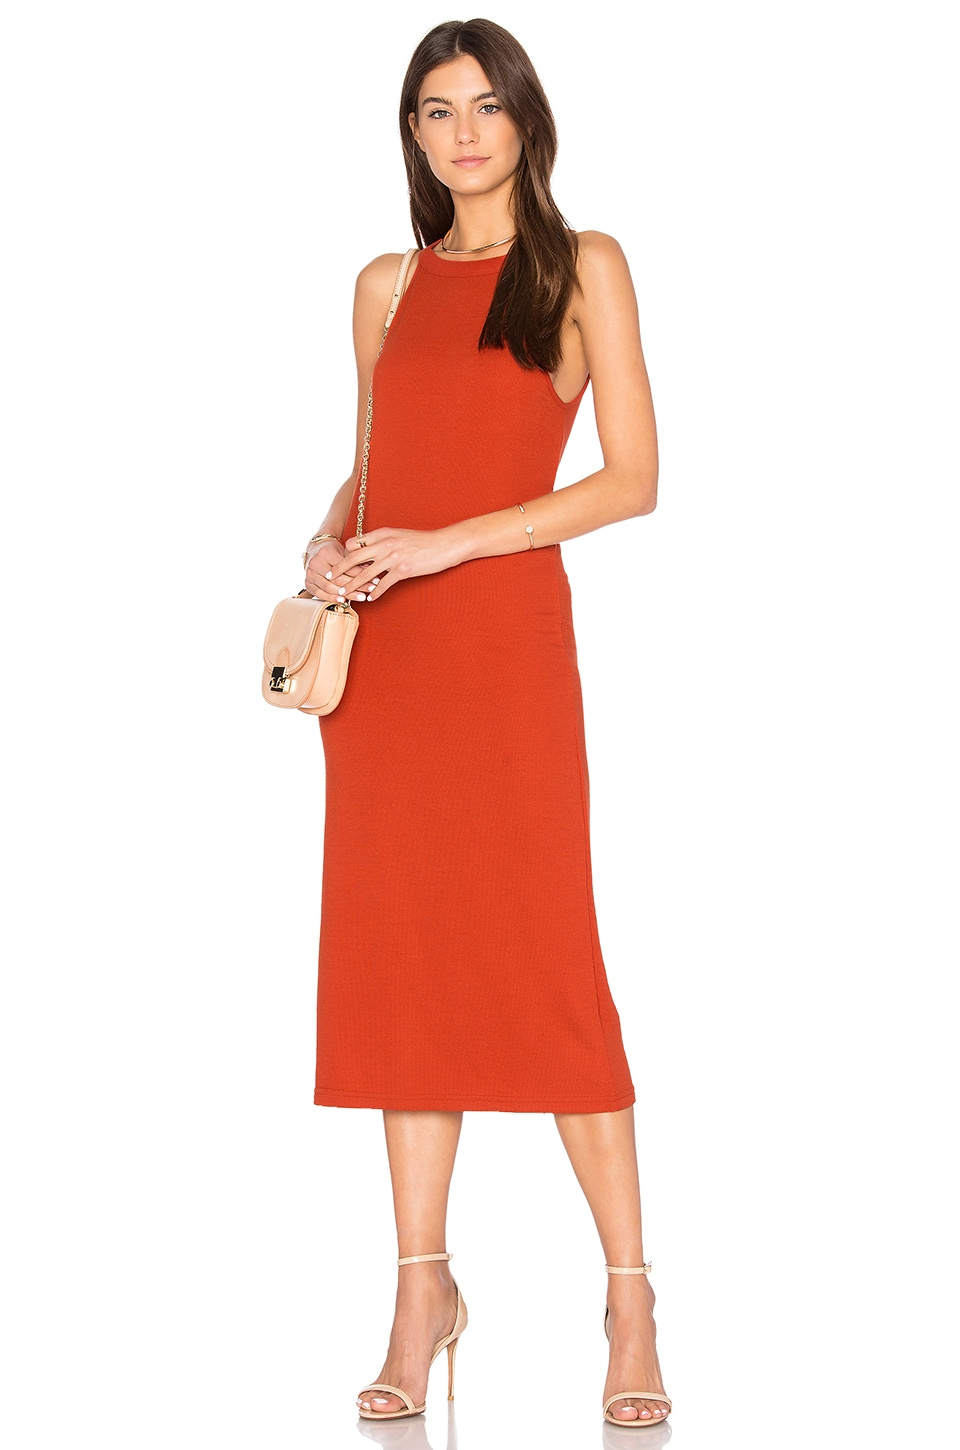 Three Days Dress by The Fifth Label